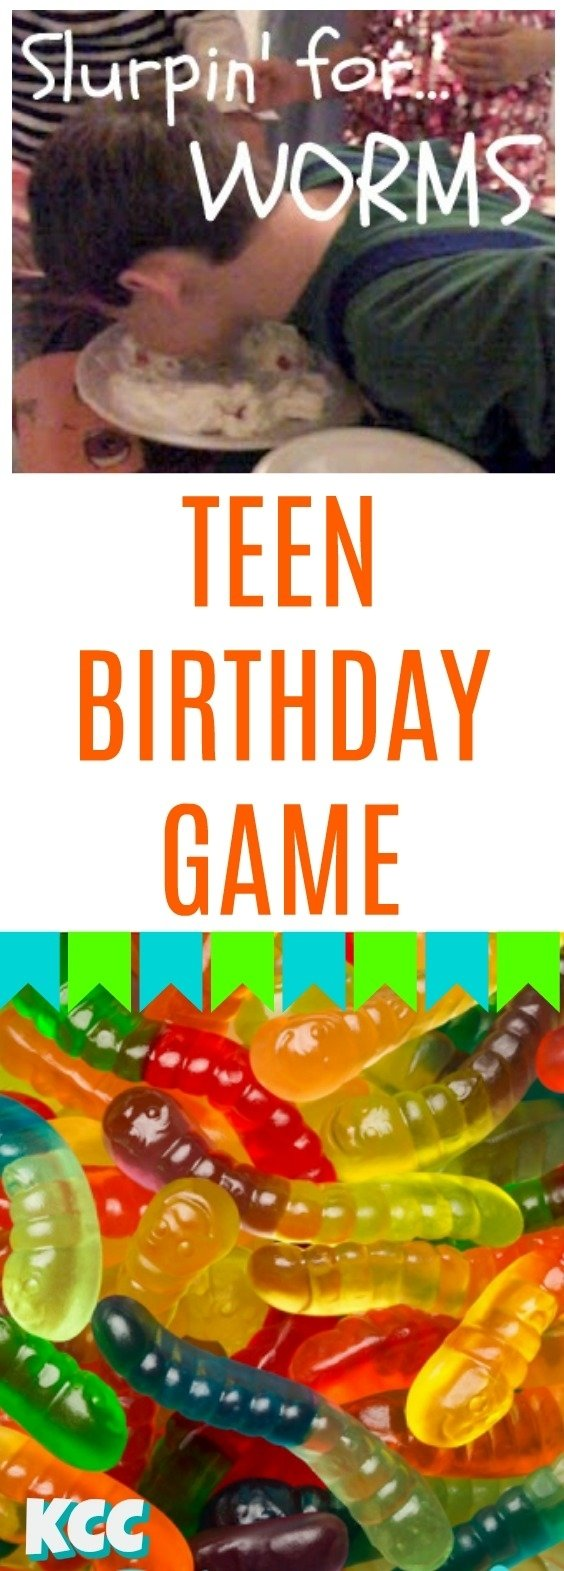 10 Lovely Party Game Ideas For Teenagers over 15 super fun halloween party game ideas for kids and teens 1 2020